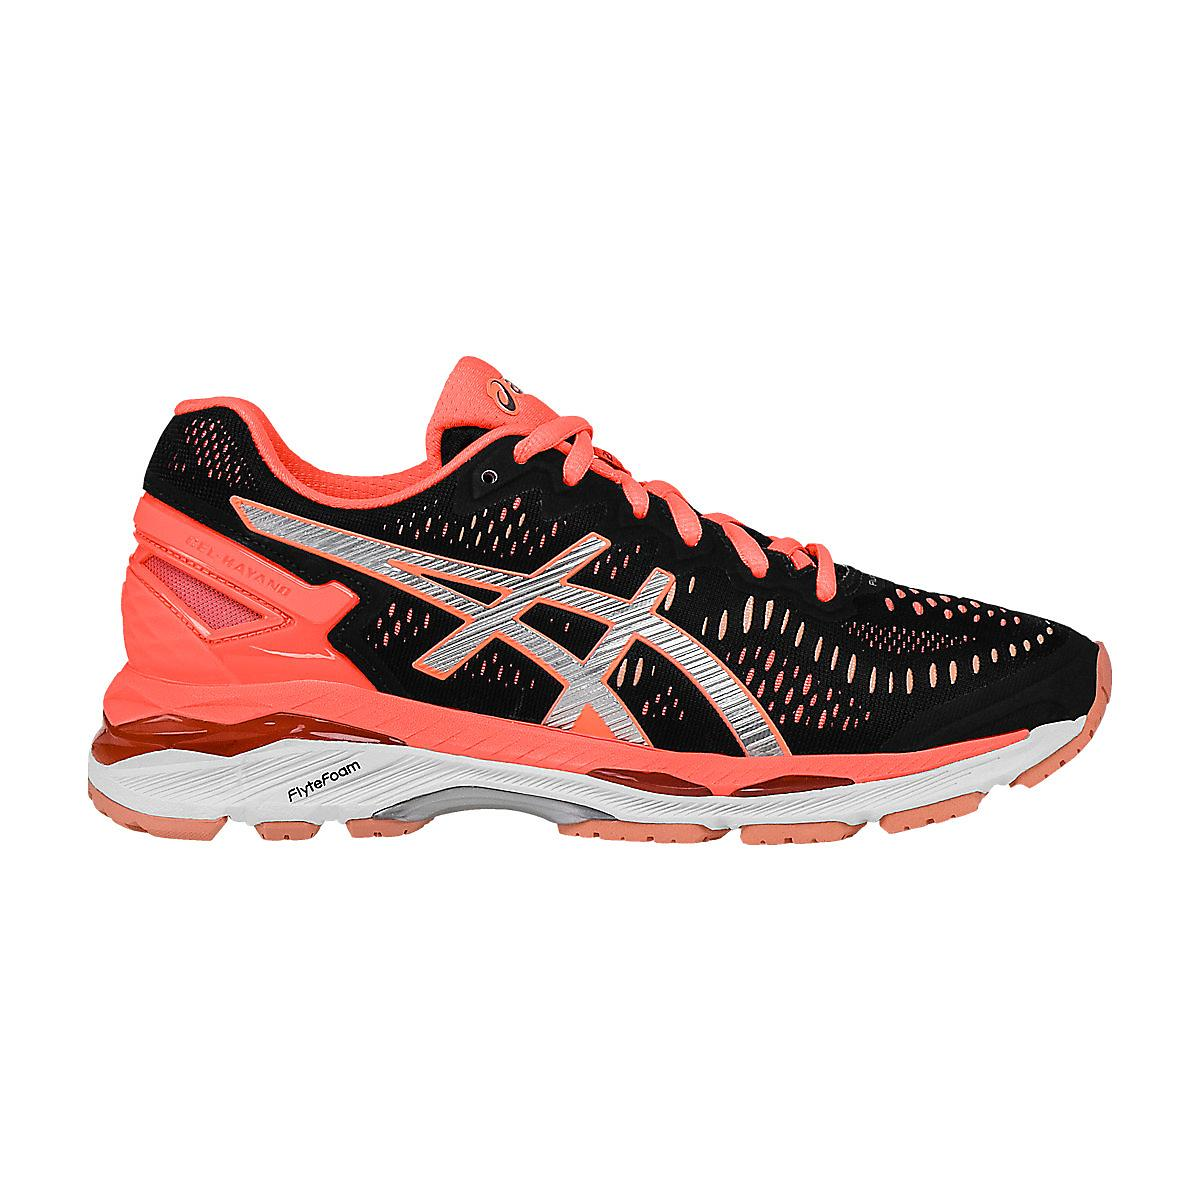 new york 422c5 1e067 Women's GEL-Kayano 23